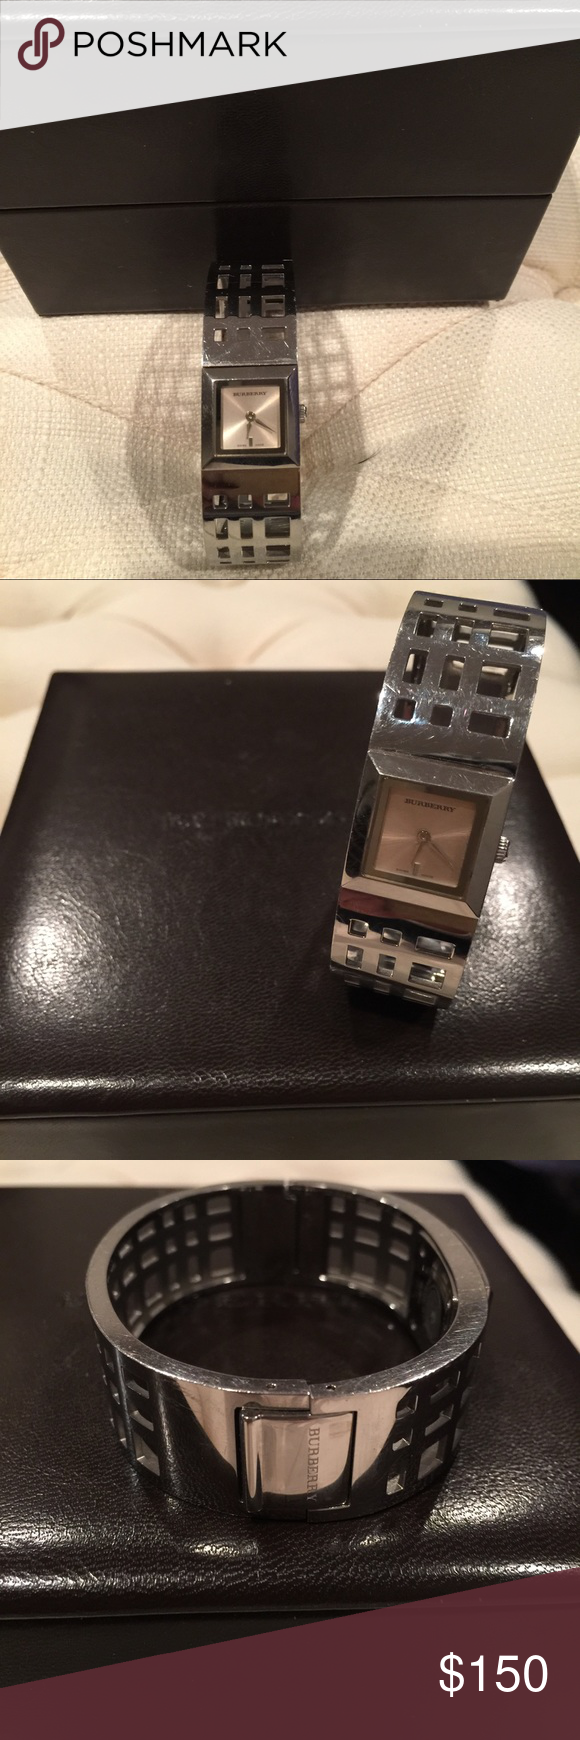 Burberry watch Burberry watch, not new. Has superficial mark on metal band. Battery operated. Burberry Other